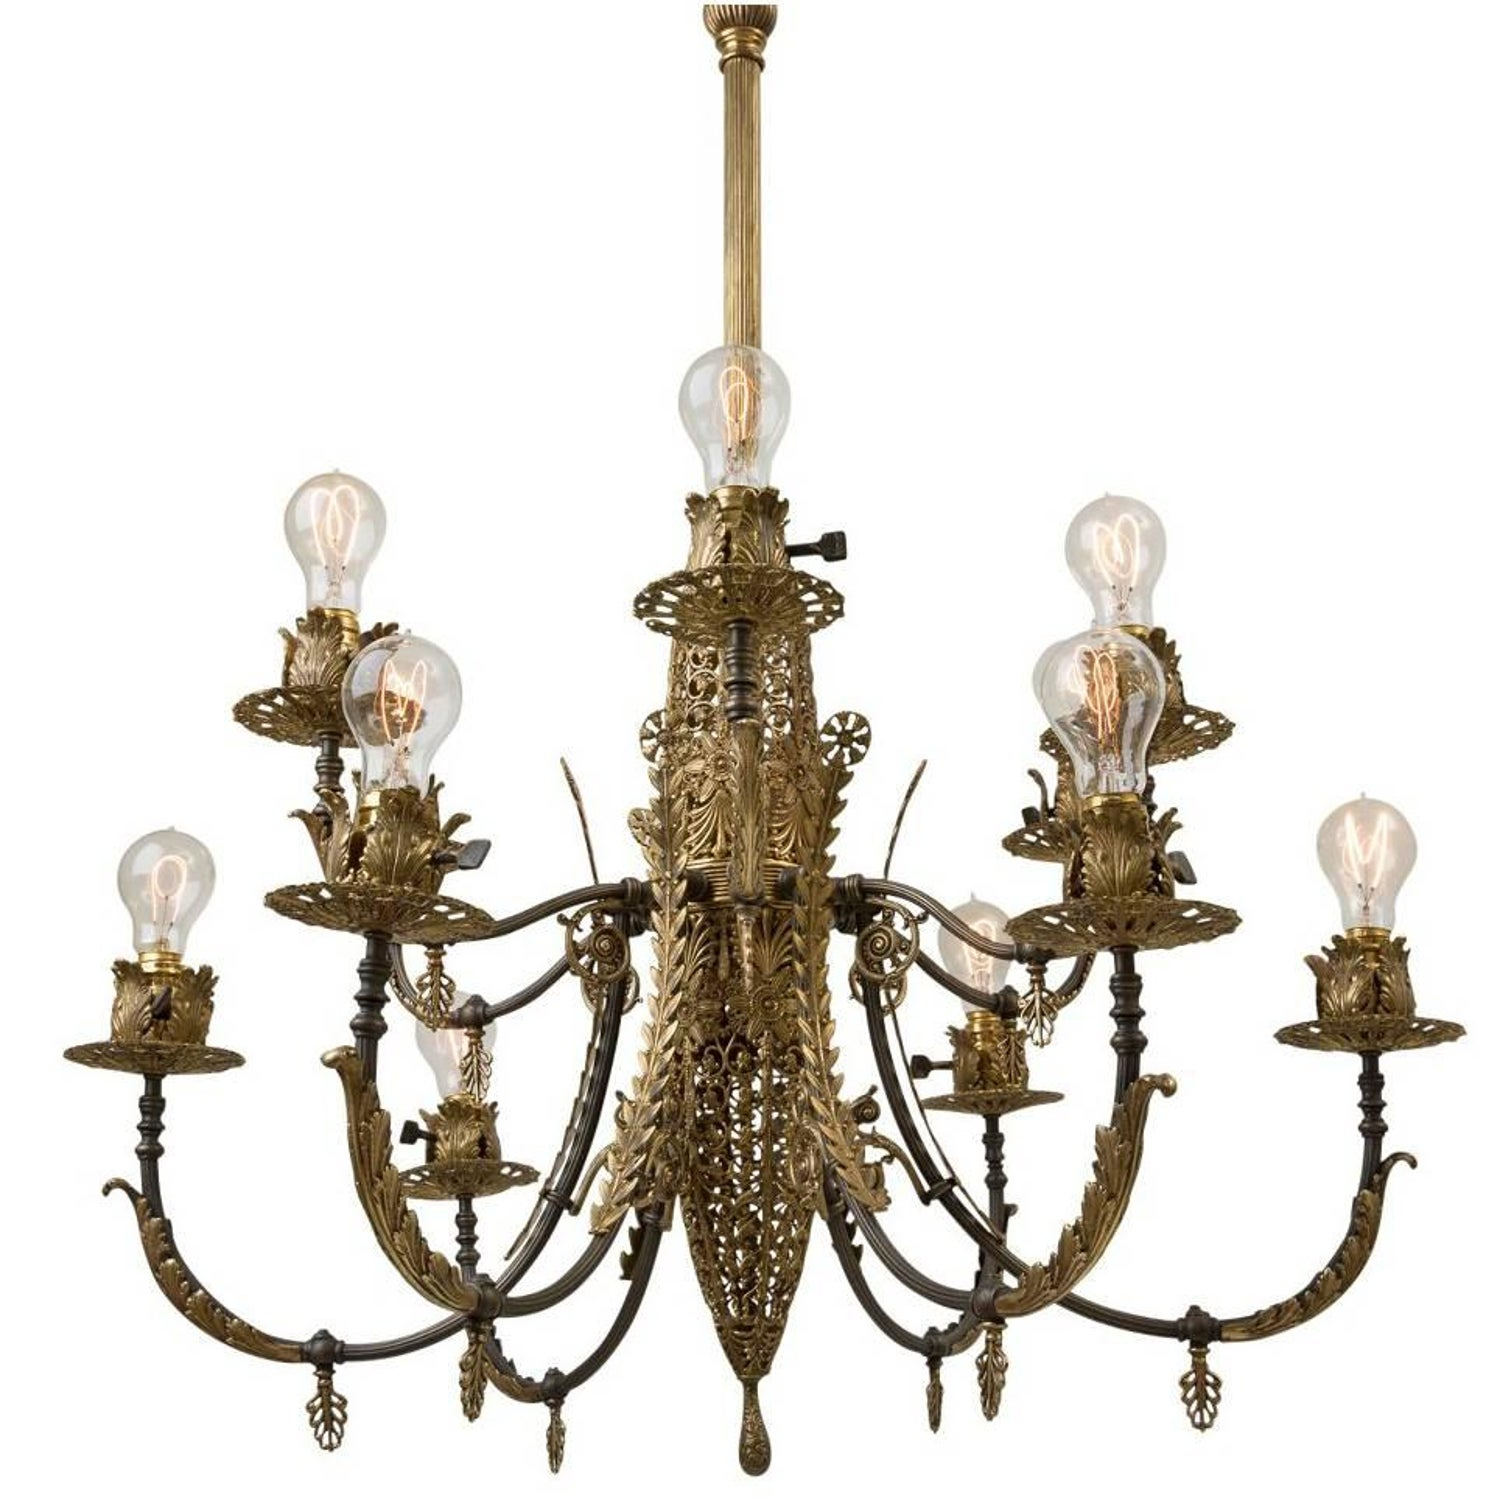 1880s chandeliers and pendants 52 for sale at 1stdibs magnificent 12 light gas empire chandelier with filigree body circa 1880 mozeypictures Image collections